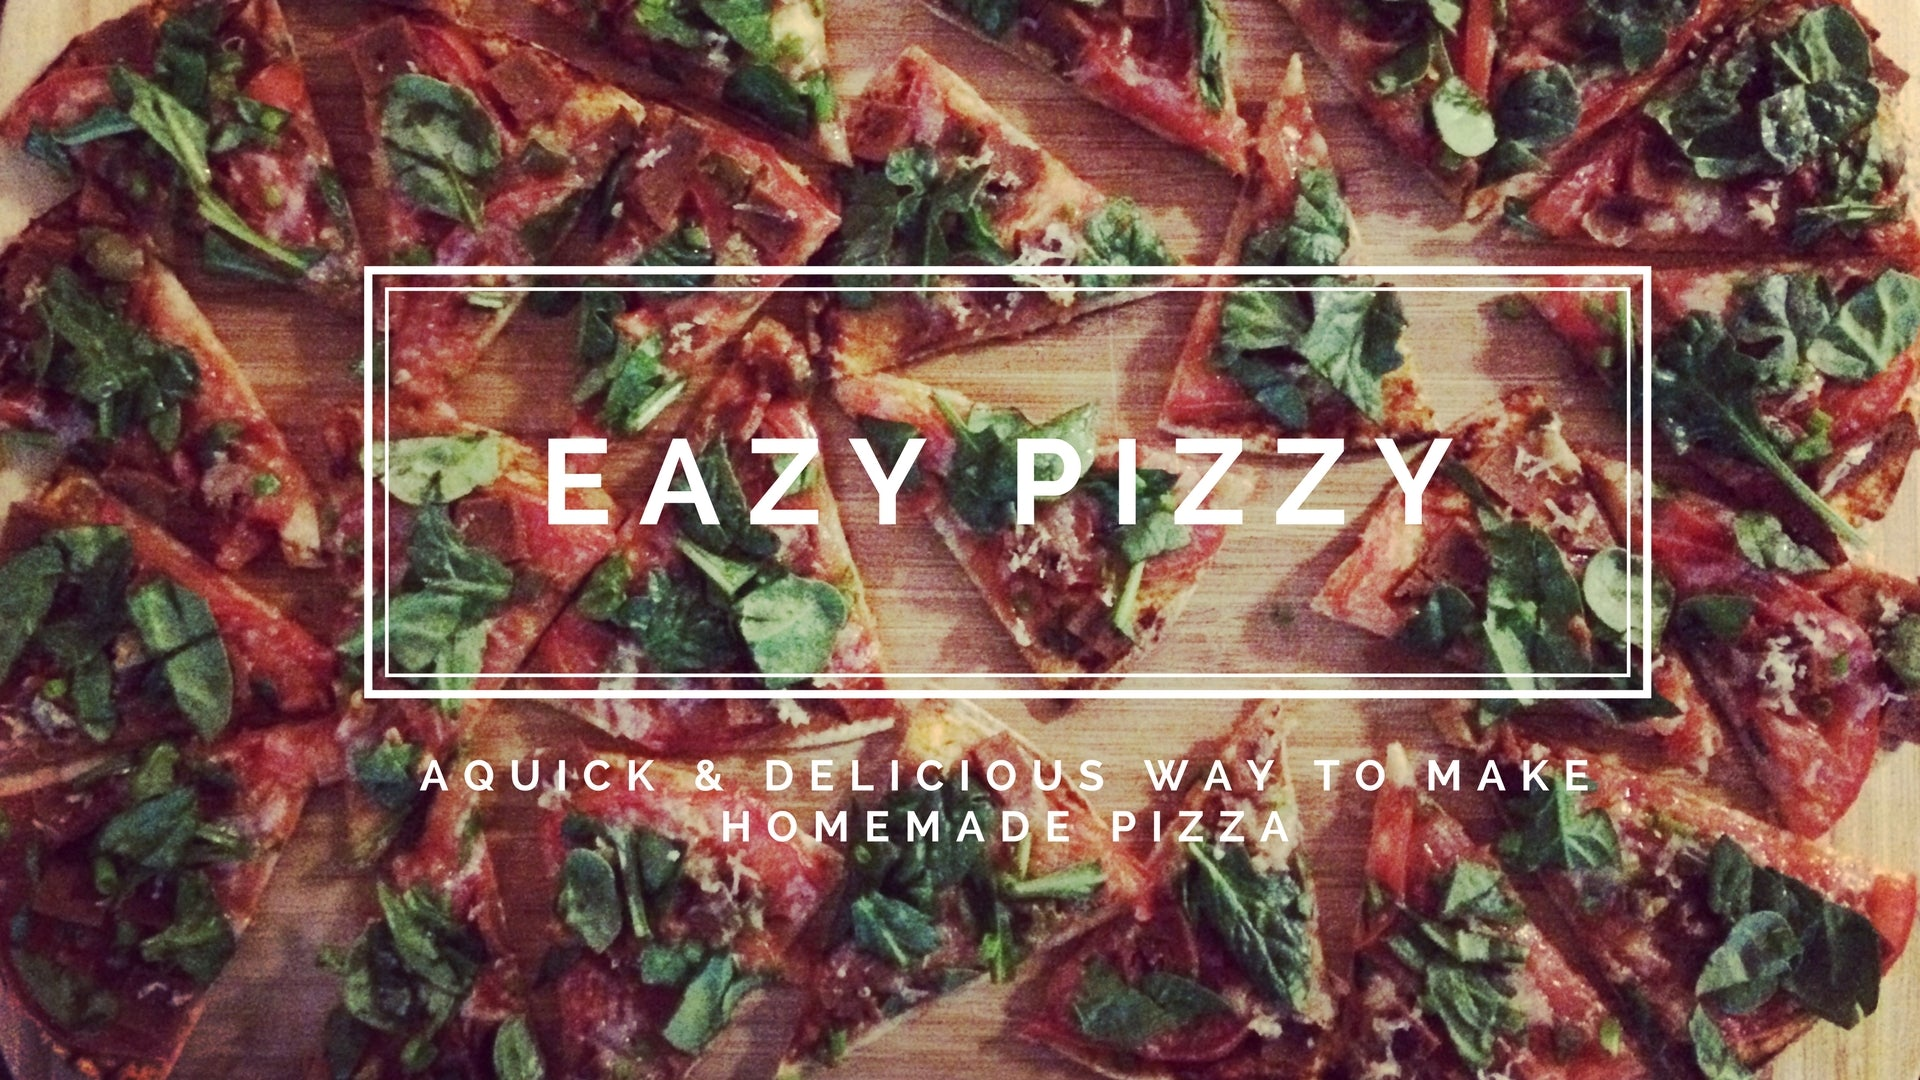 Eazy Pizzy - A quick & delicious way to make homemade pizzas